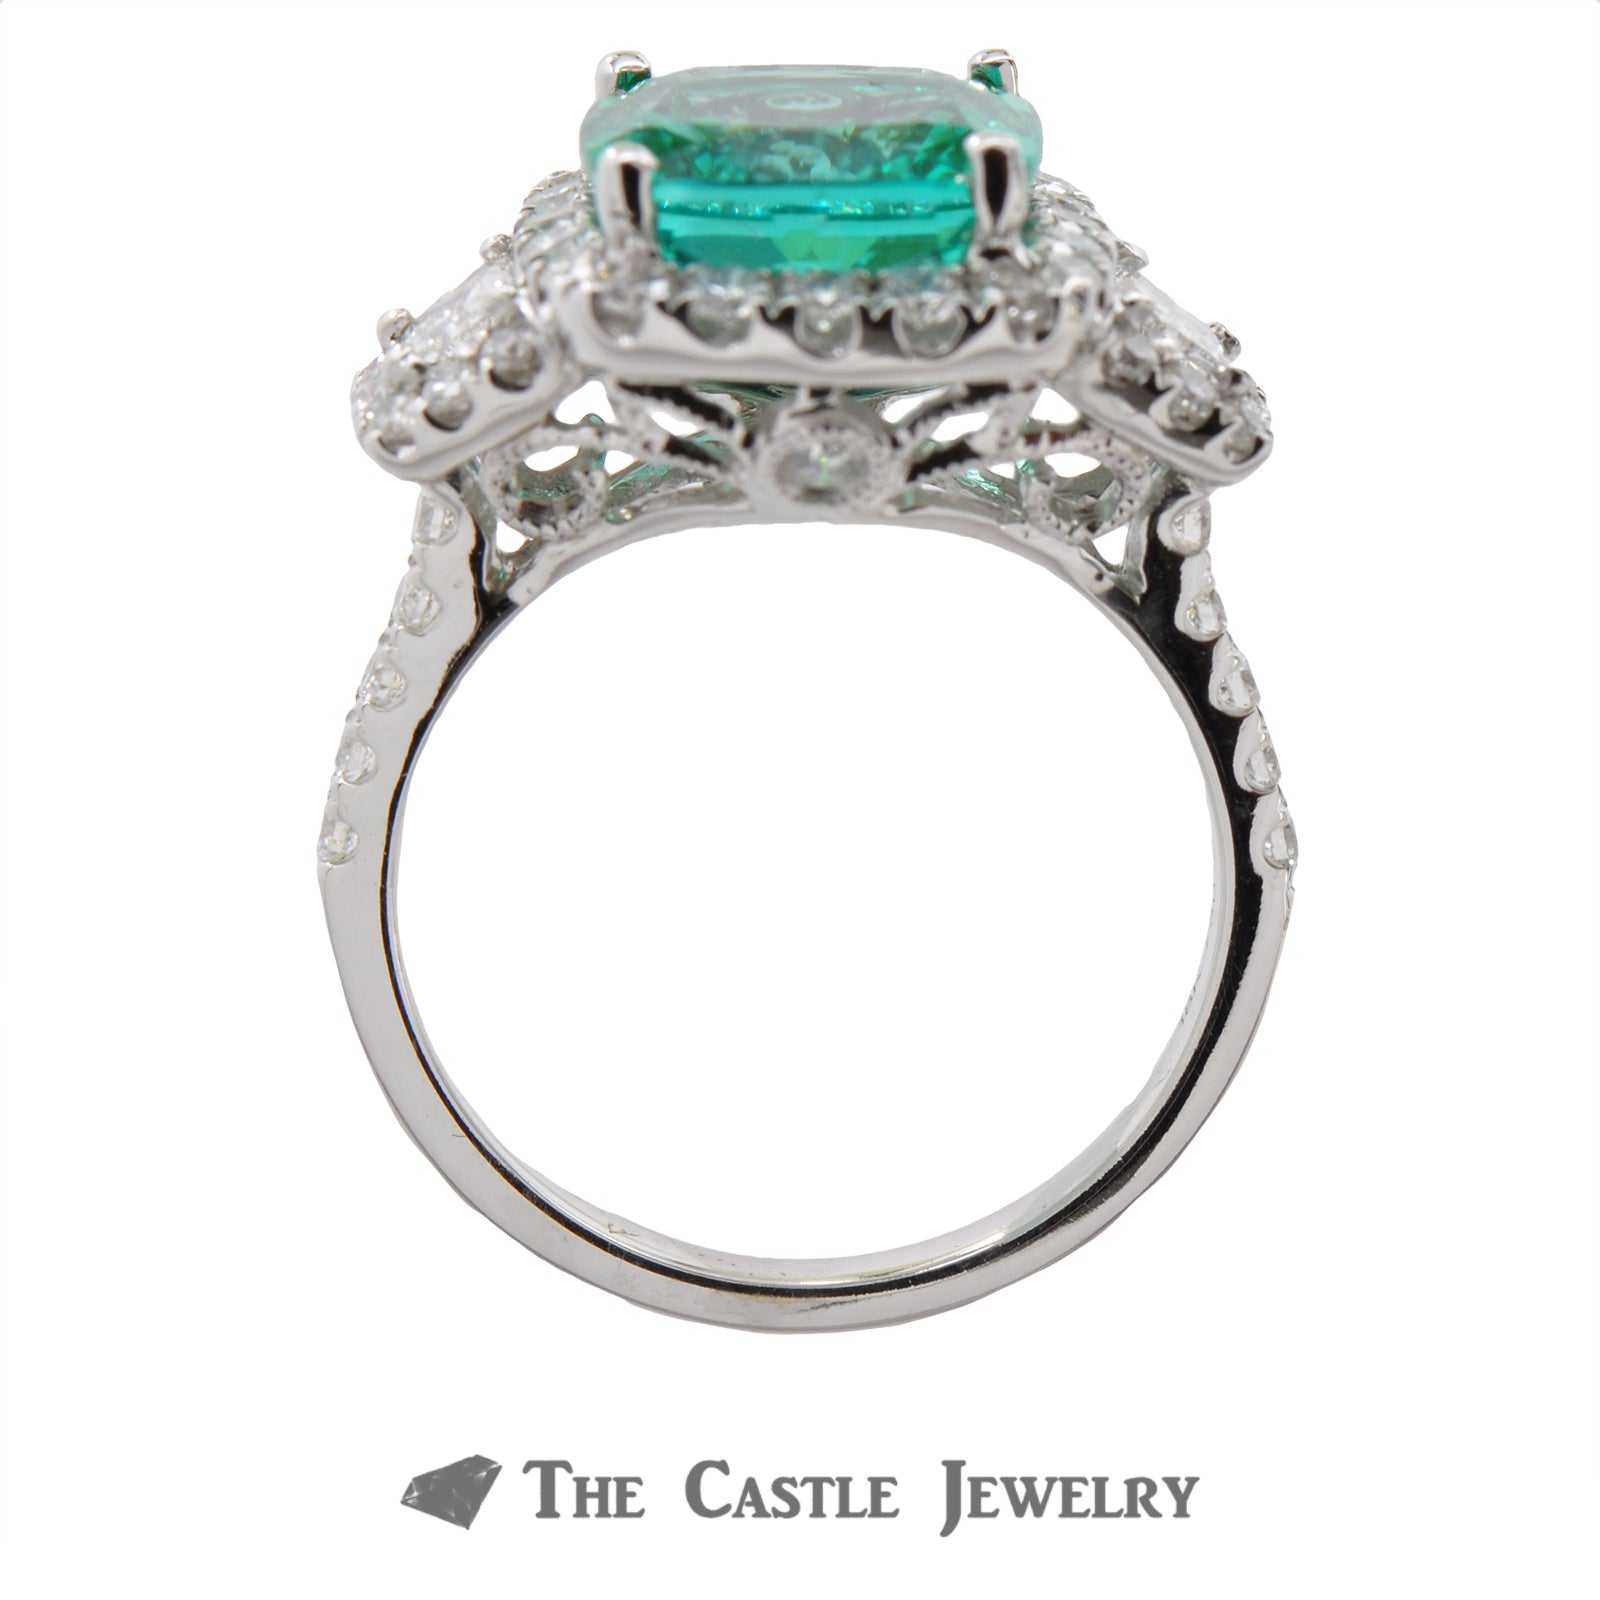 Cushion Cut Emerald Ring in a 18K White Gold Diamond Mounting-1